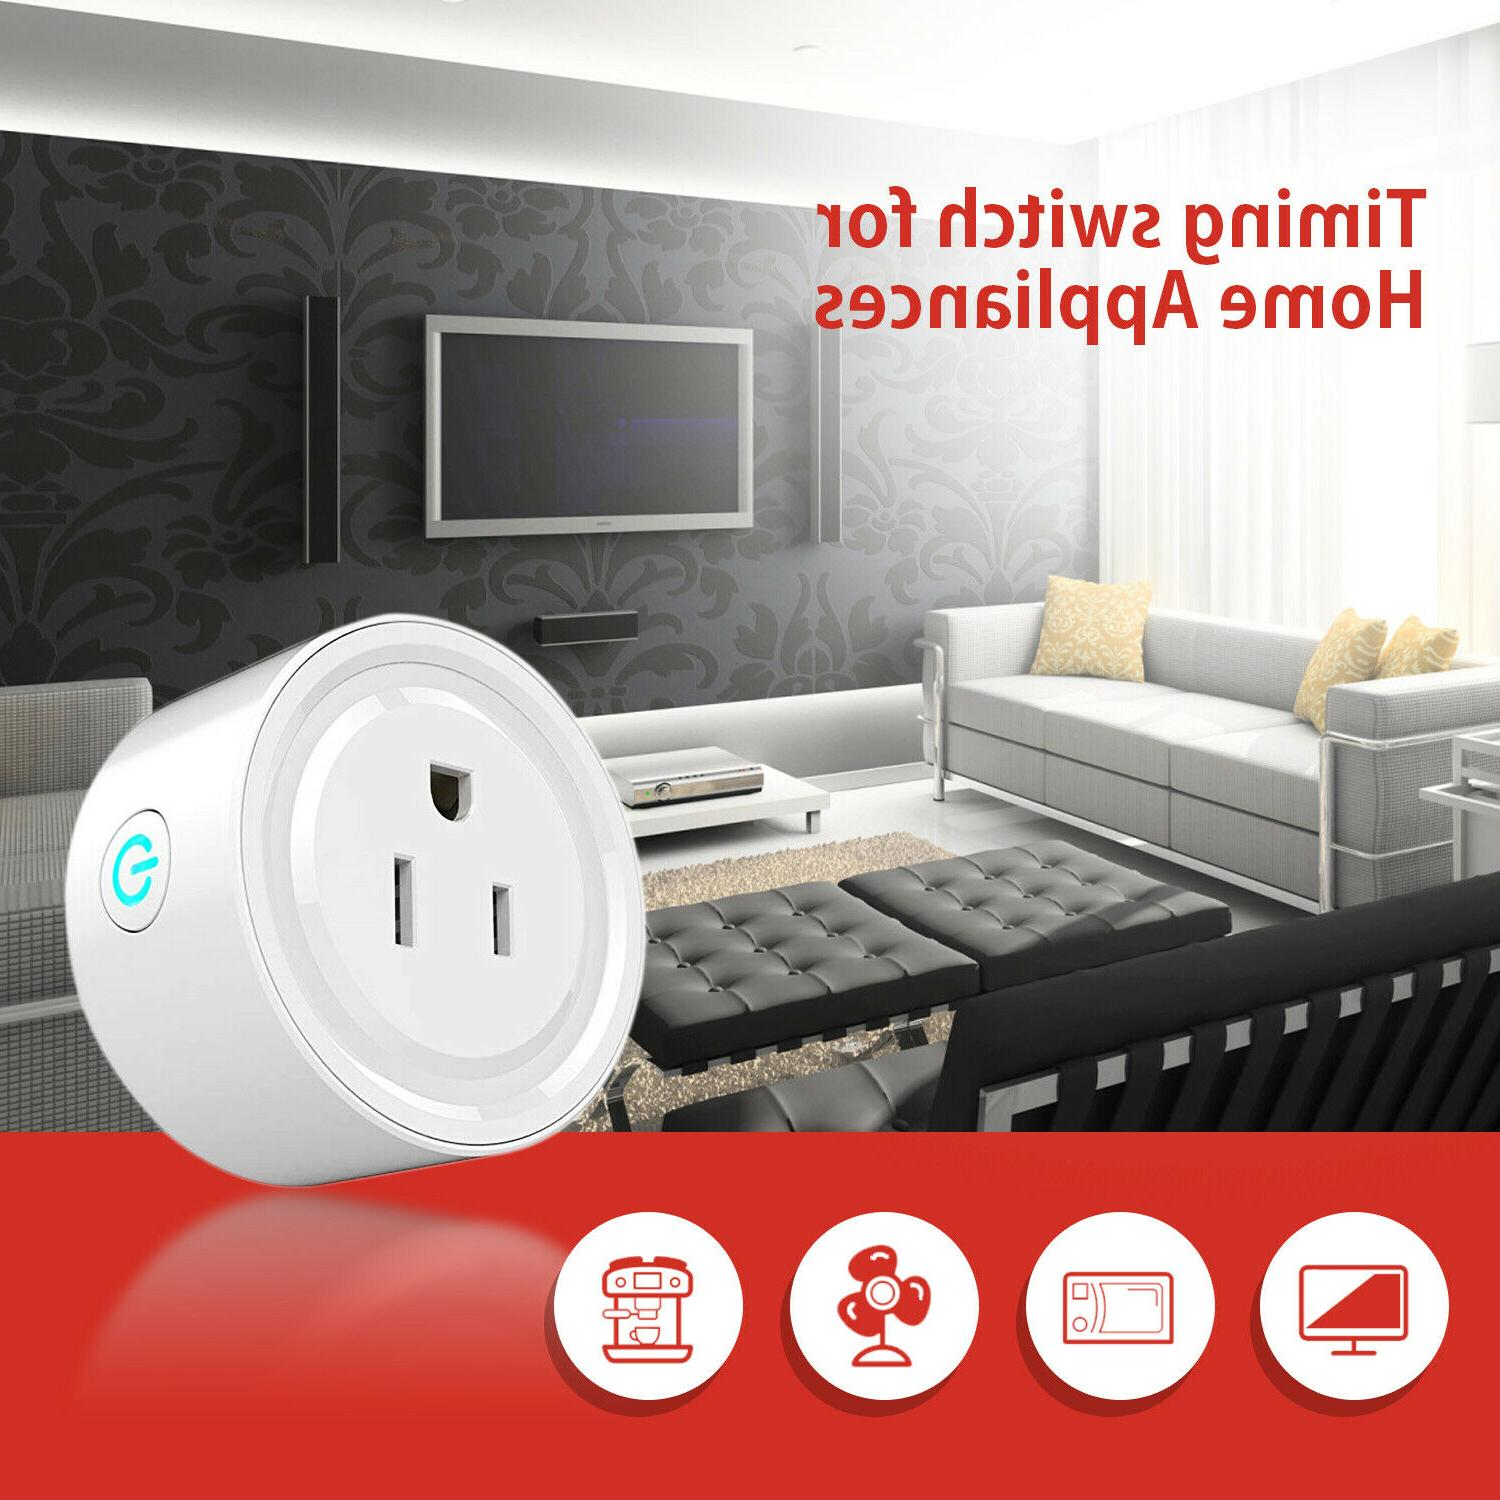 DYNAMICS Plug outlet with Google Echo Alexa Remote